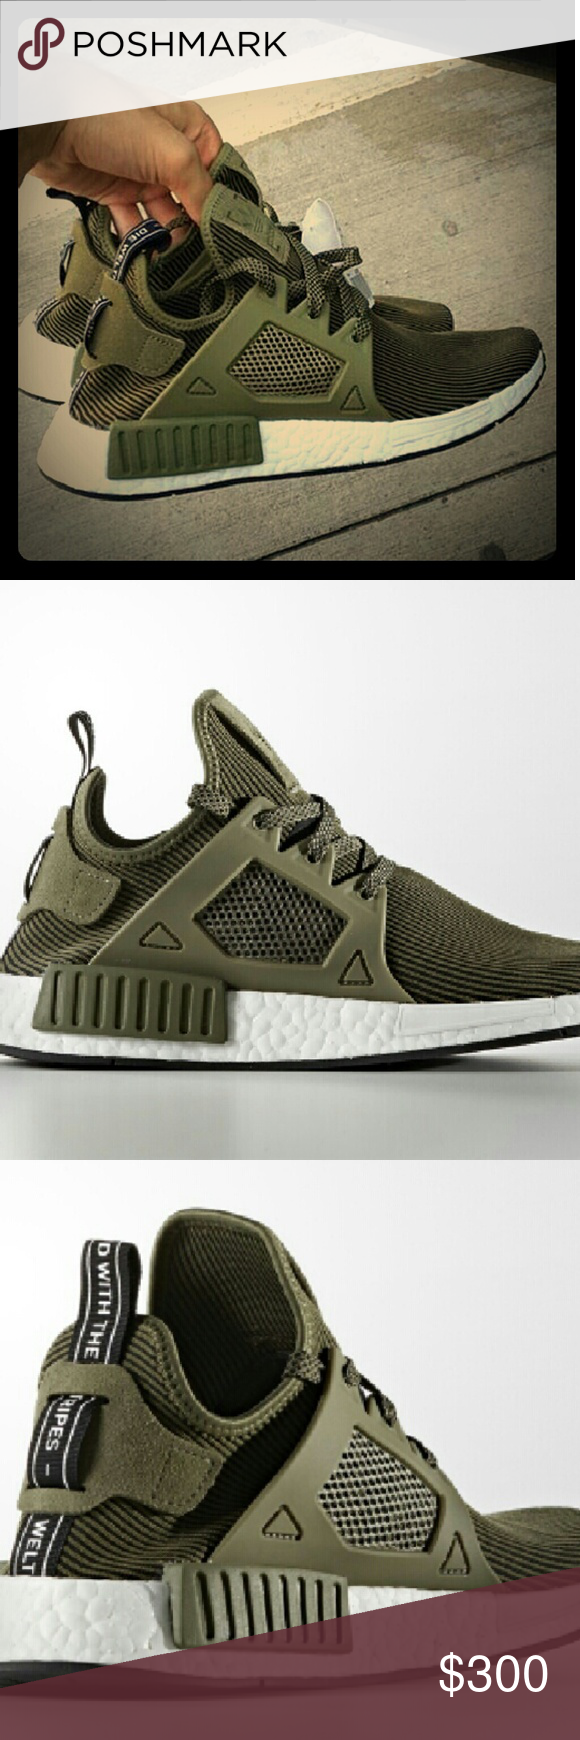 8062091fb Adidas NMD XR1 Olive Brand new adidas originals NMD XR1. Rare sneakers. Adidas  Shoes Sneakers